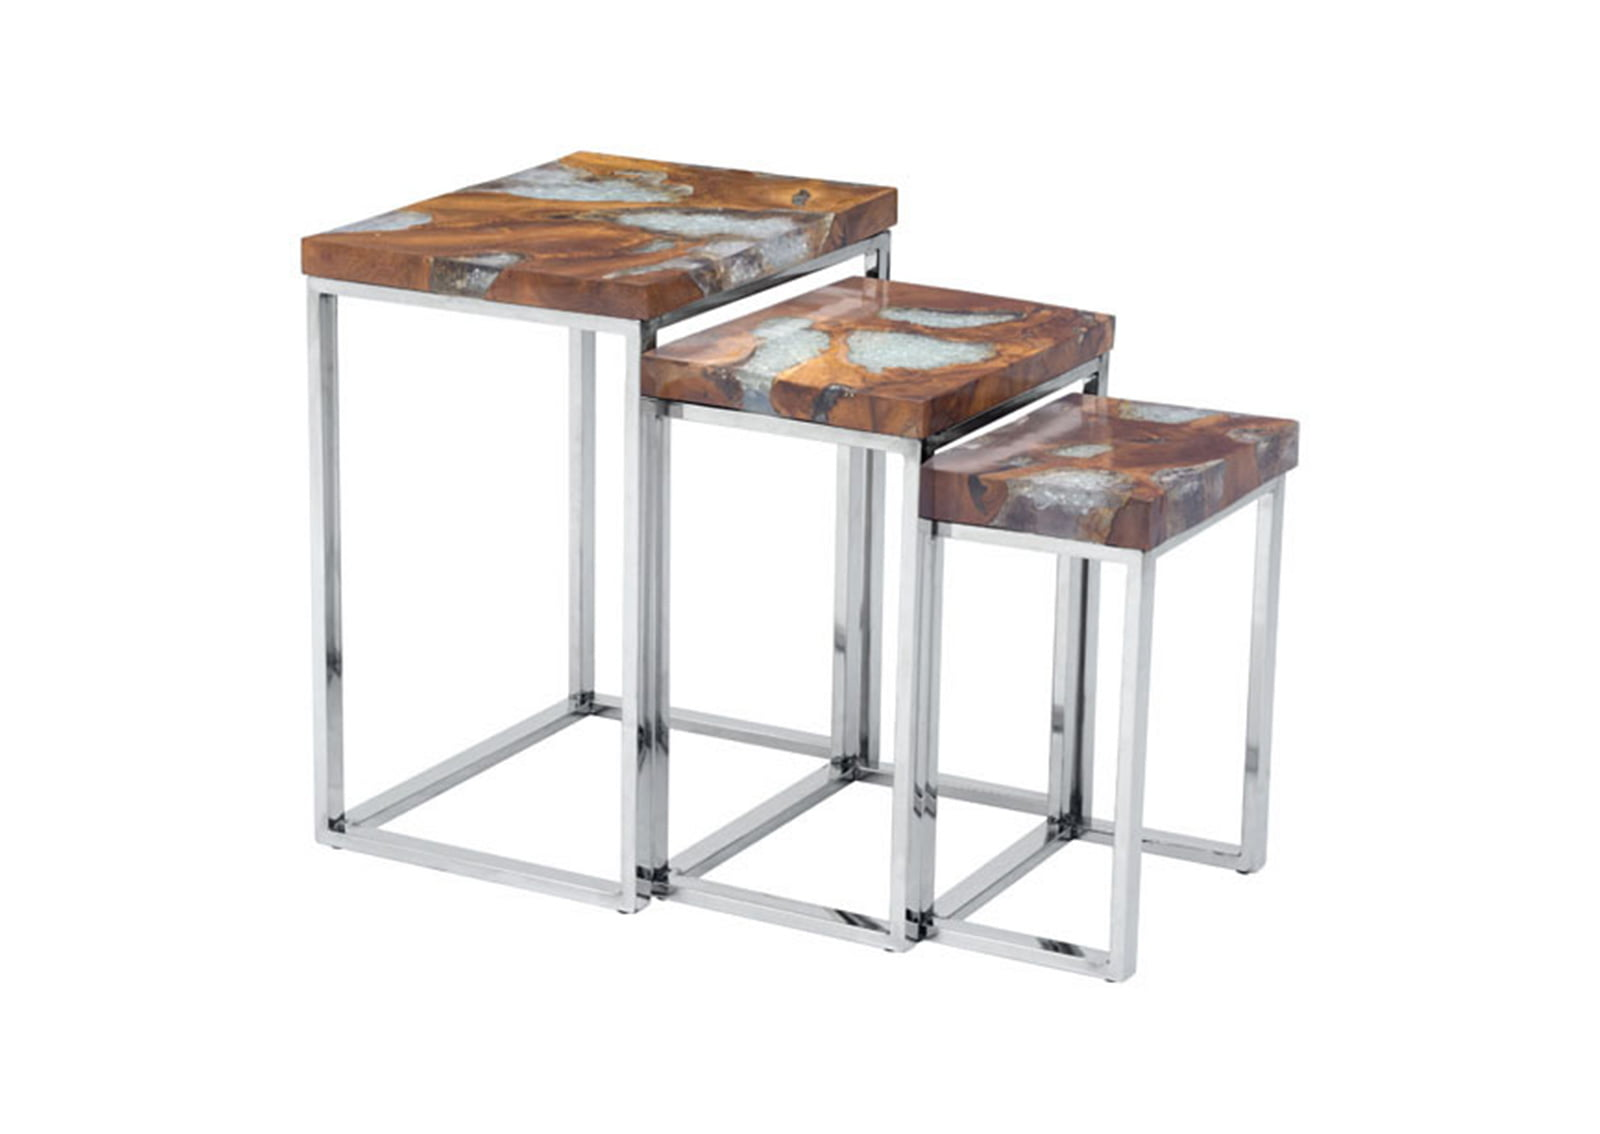 Fissure-Nesting-Tables1